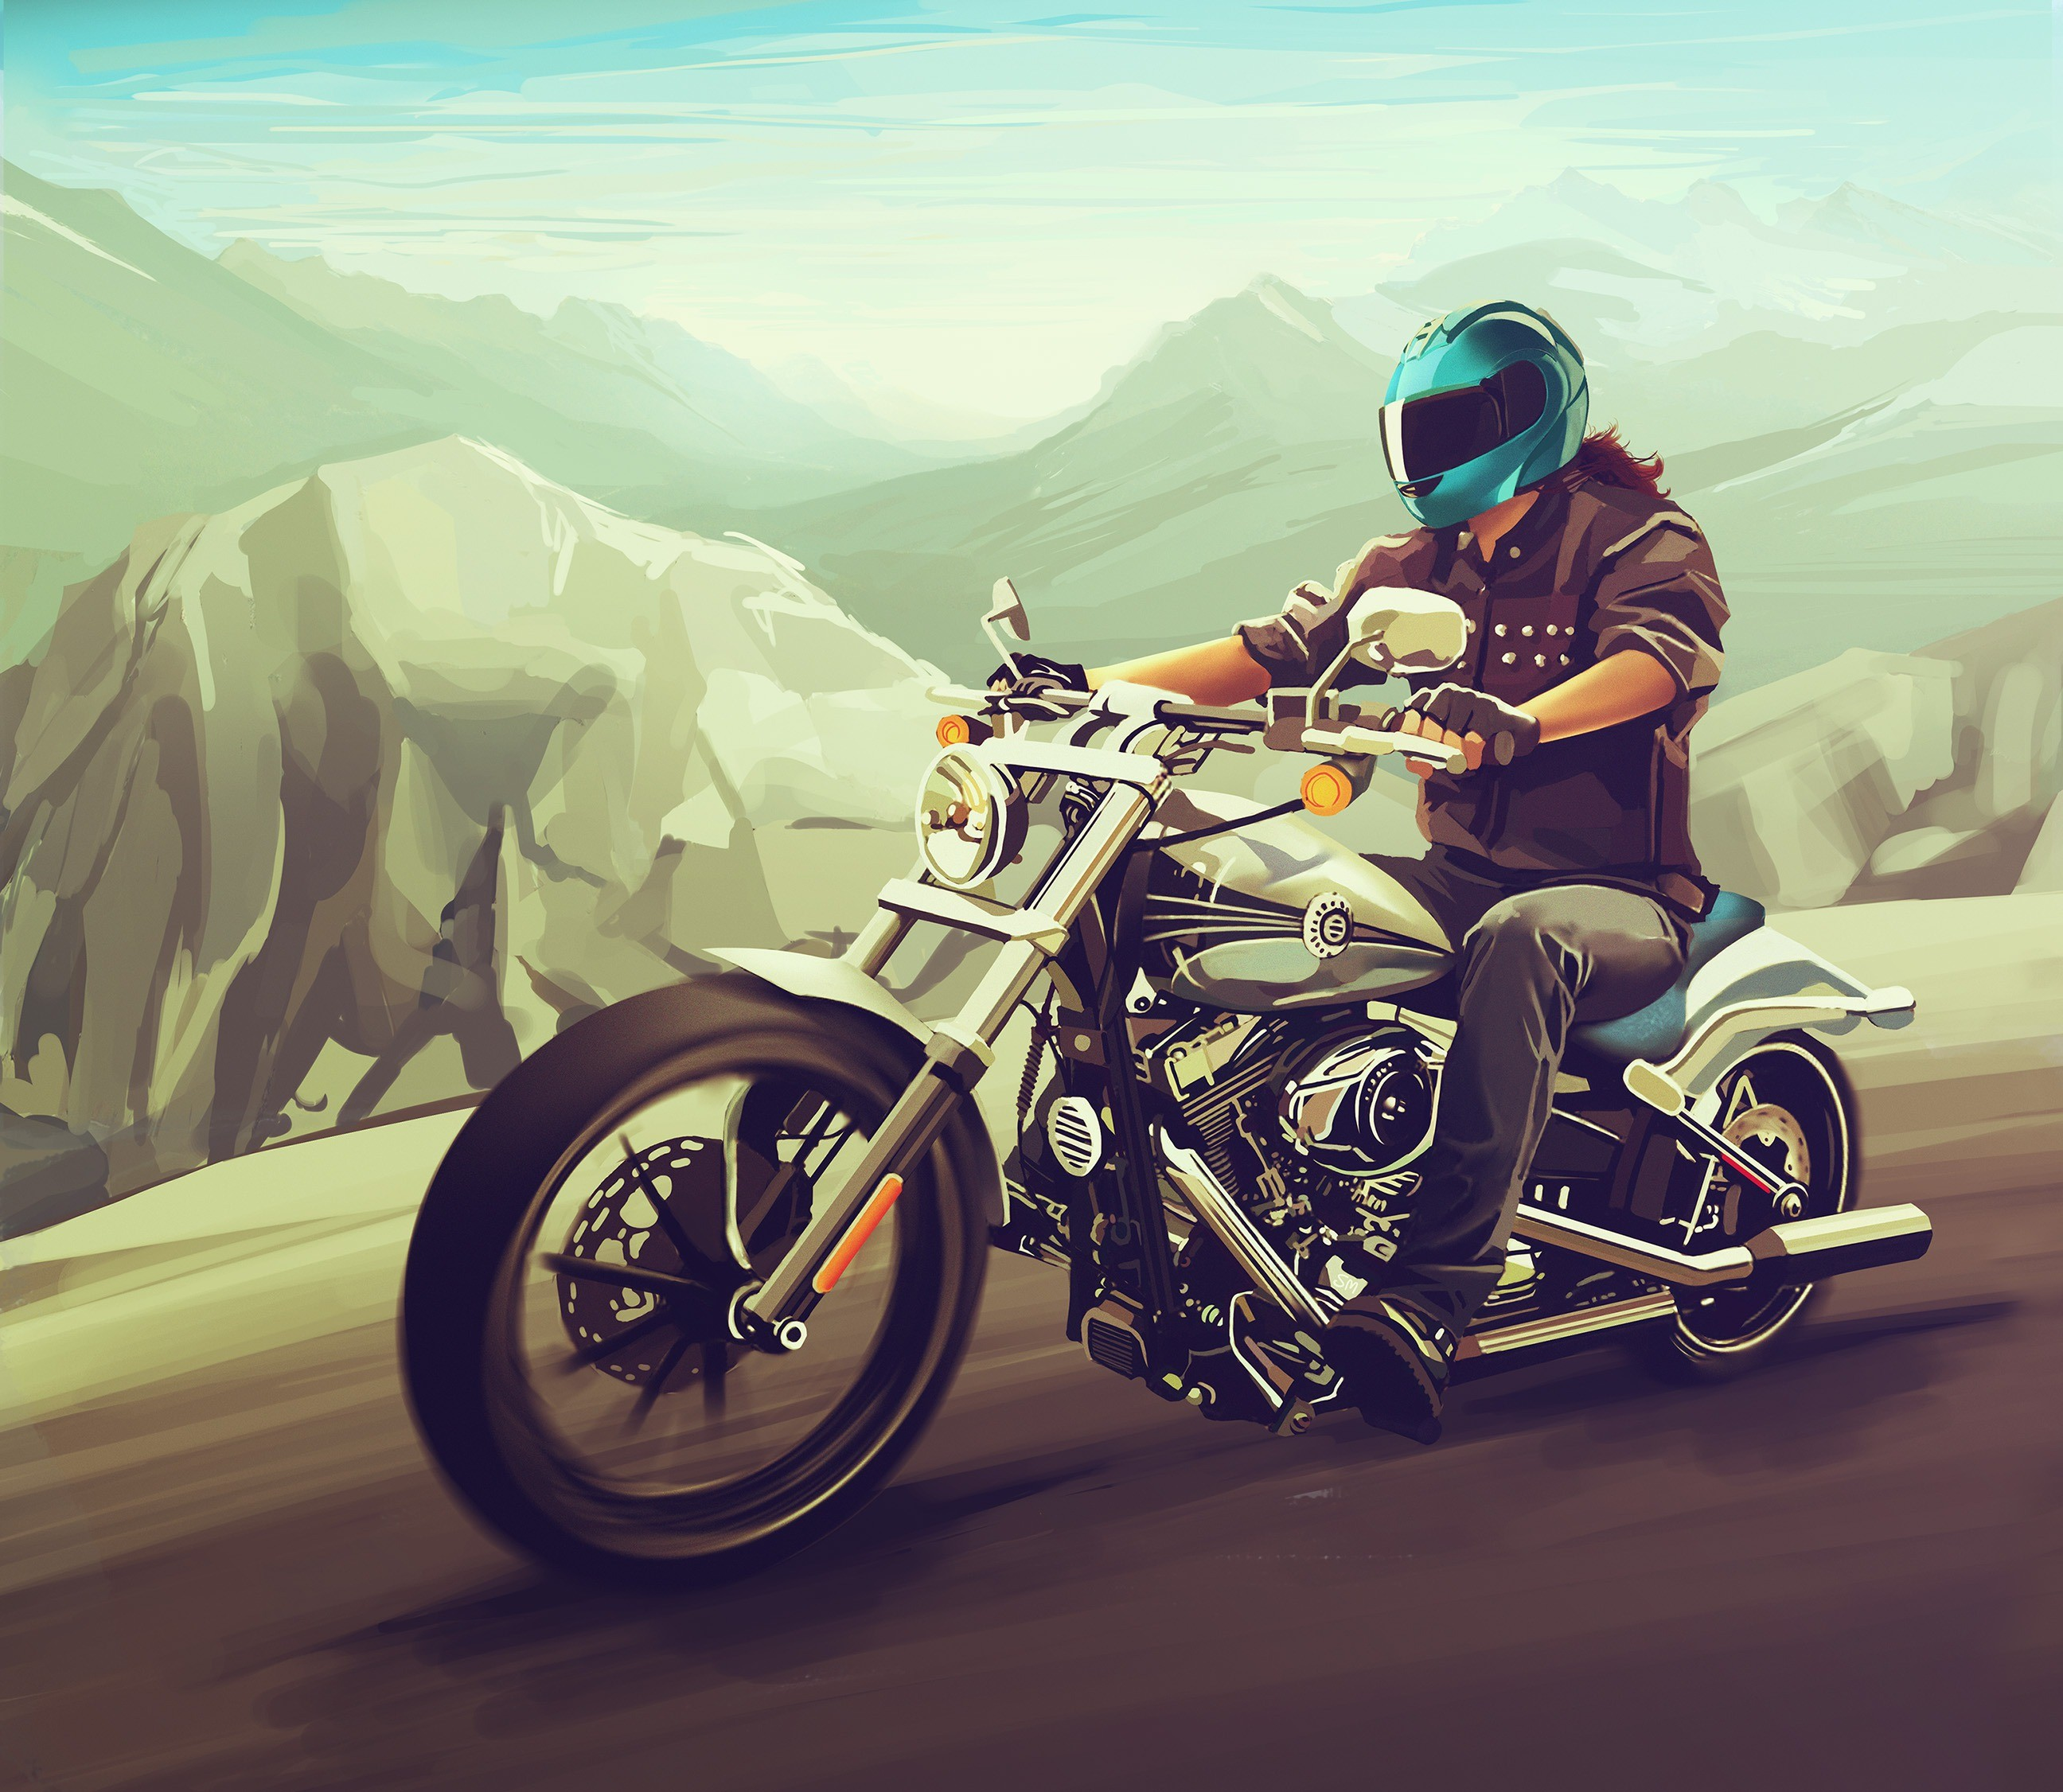 2048x1152 Harley Davidson Fan Art 2048x1152 Resolution HD